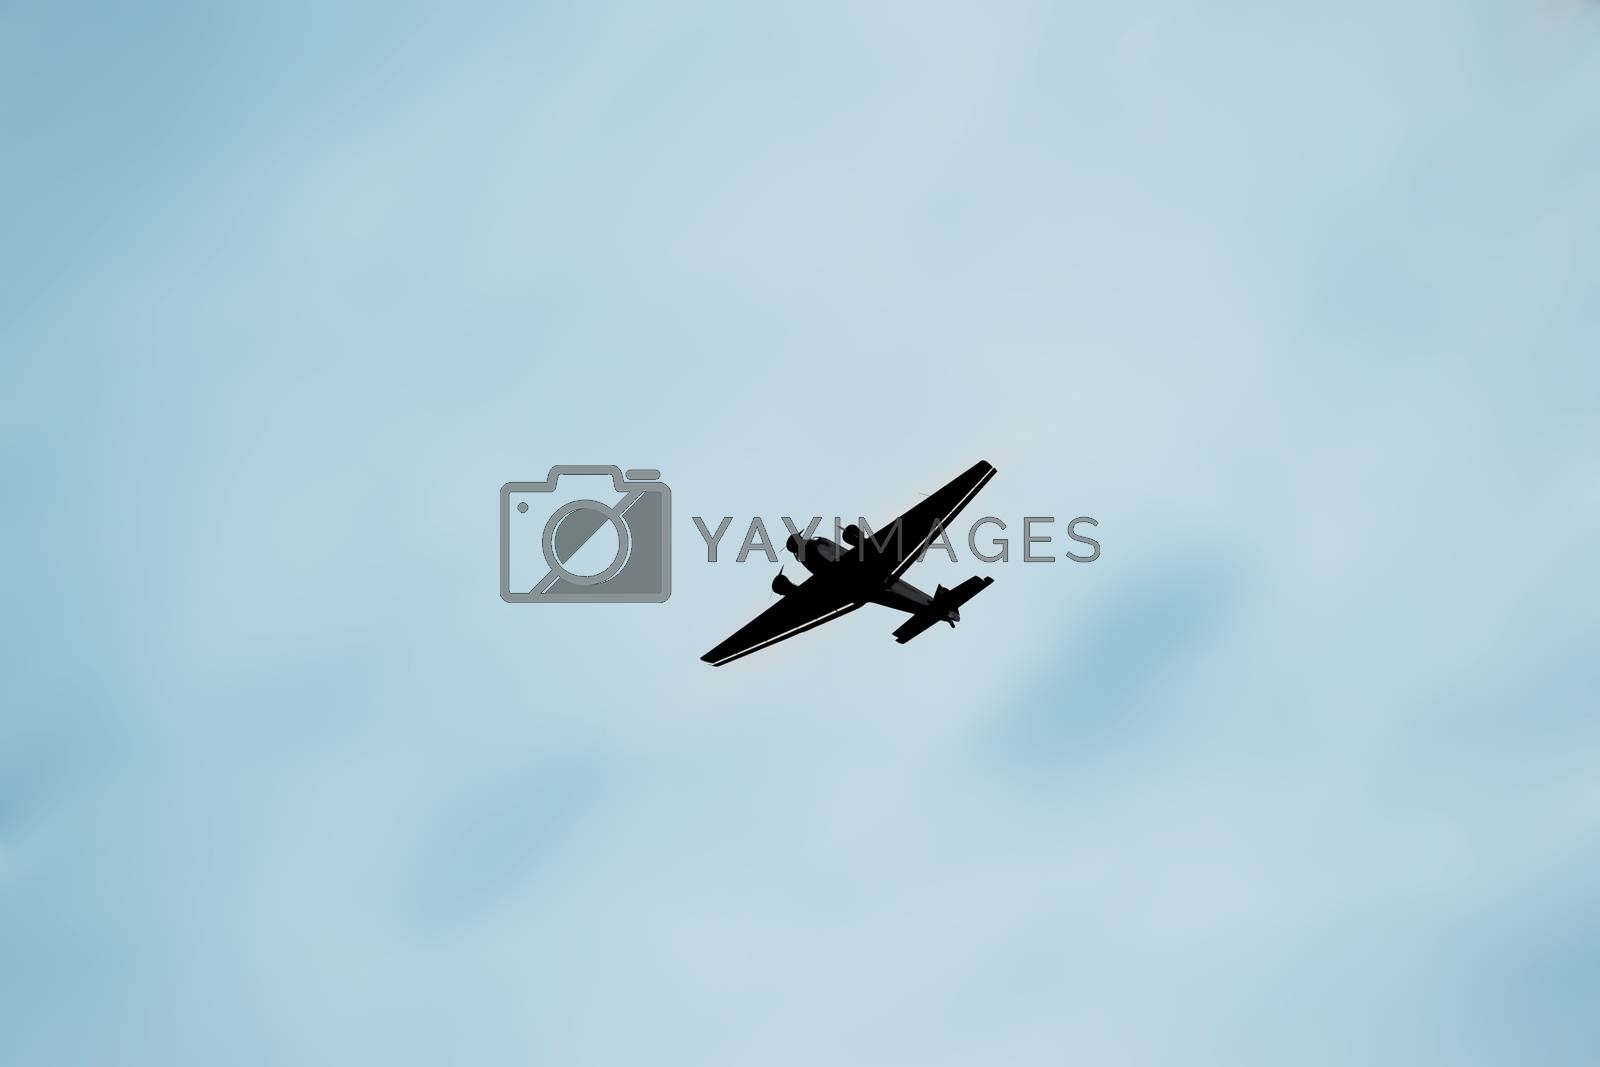 The Junkers Ju 52, a three-engine airplane in front of a blurred background.